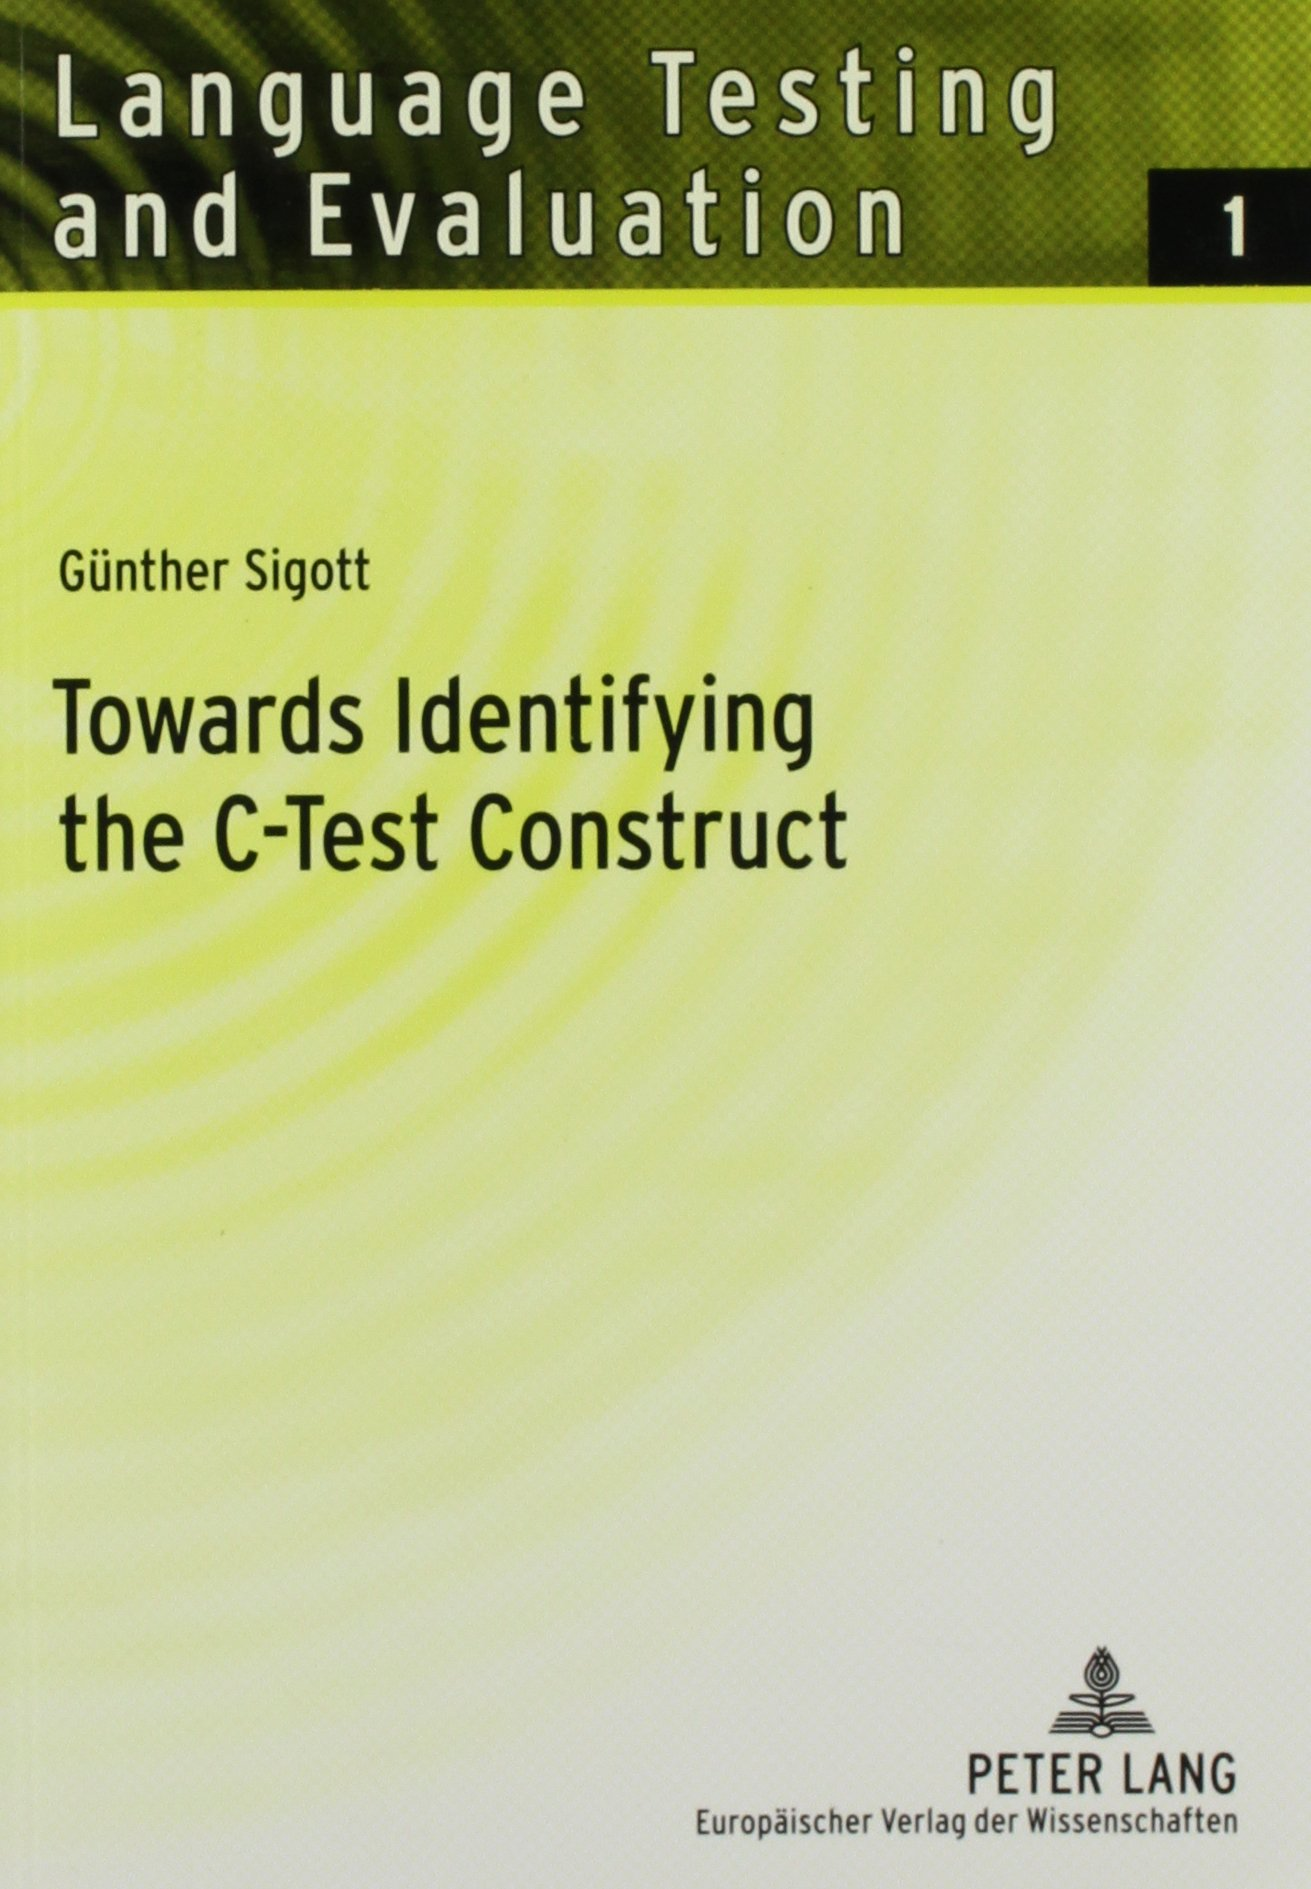 Towards Identifying the C-Test Construct (Language Testing and Evaluation) by Peter Lang Publishing